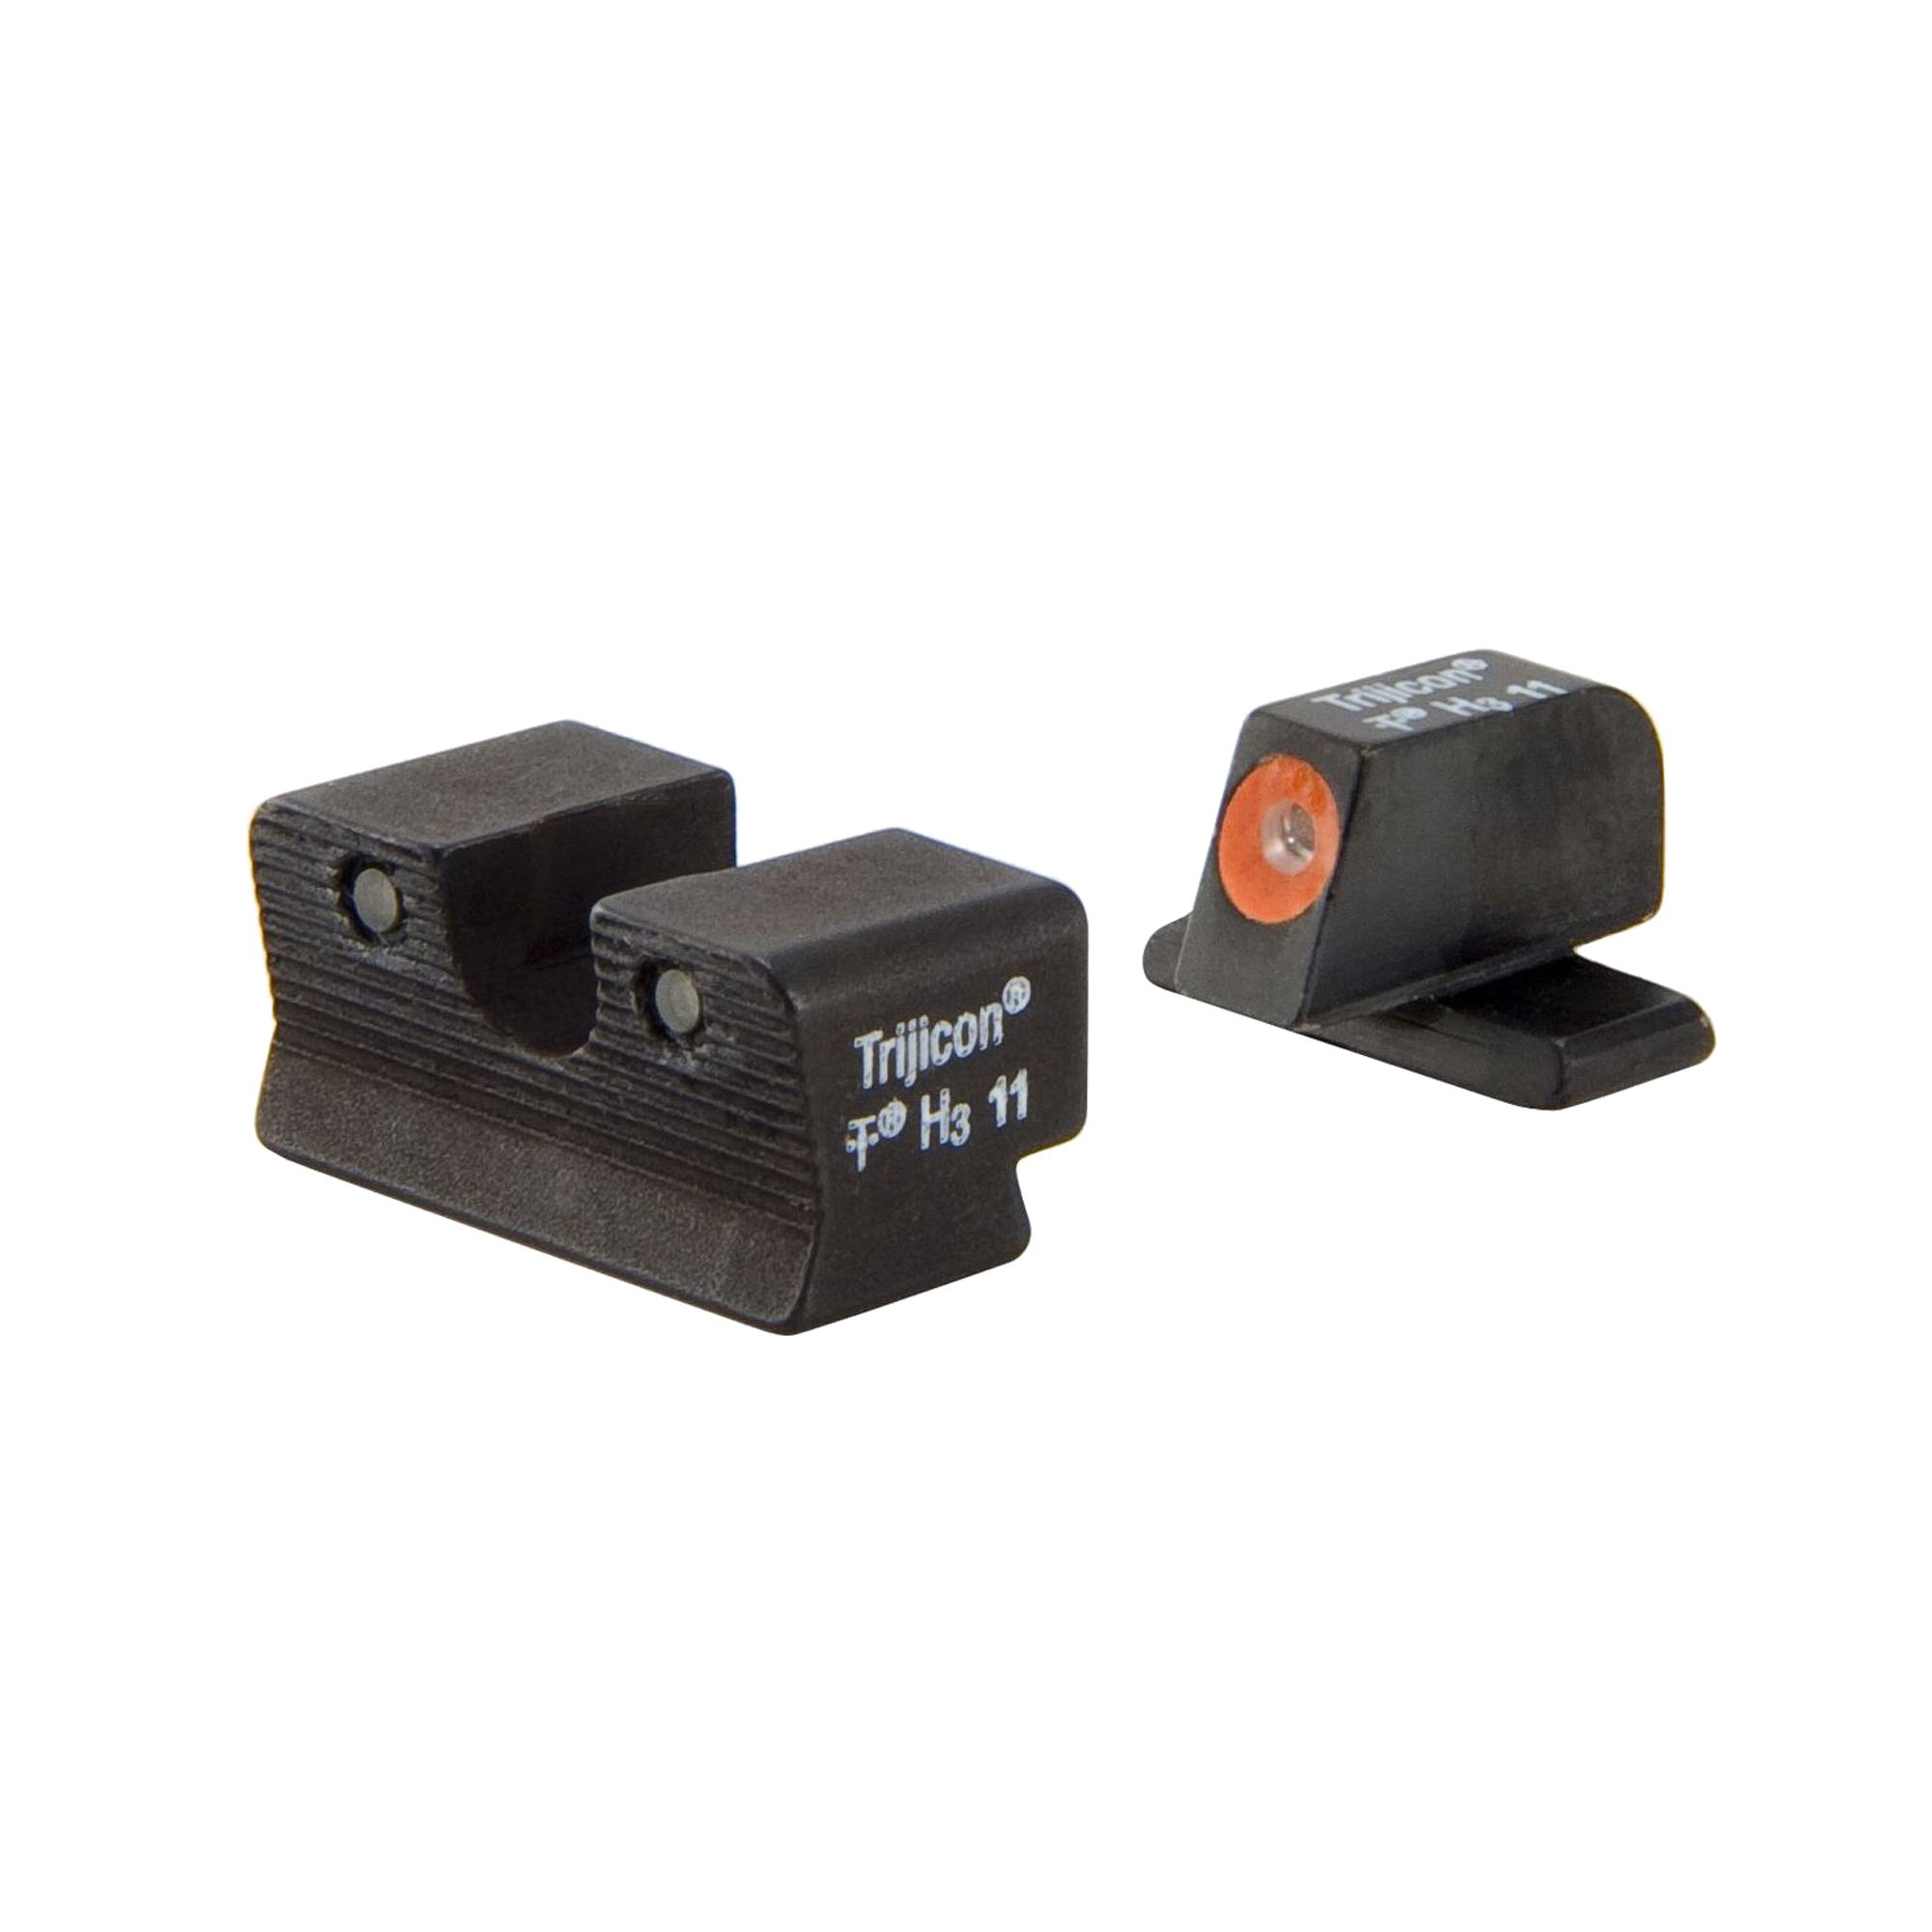 Trijicon Walther HD Night Sight Set PPS PPX PPS M2, Orange Rear Lamp by Trijicon